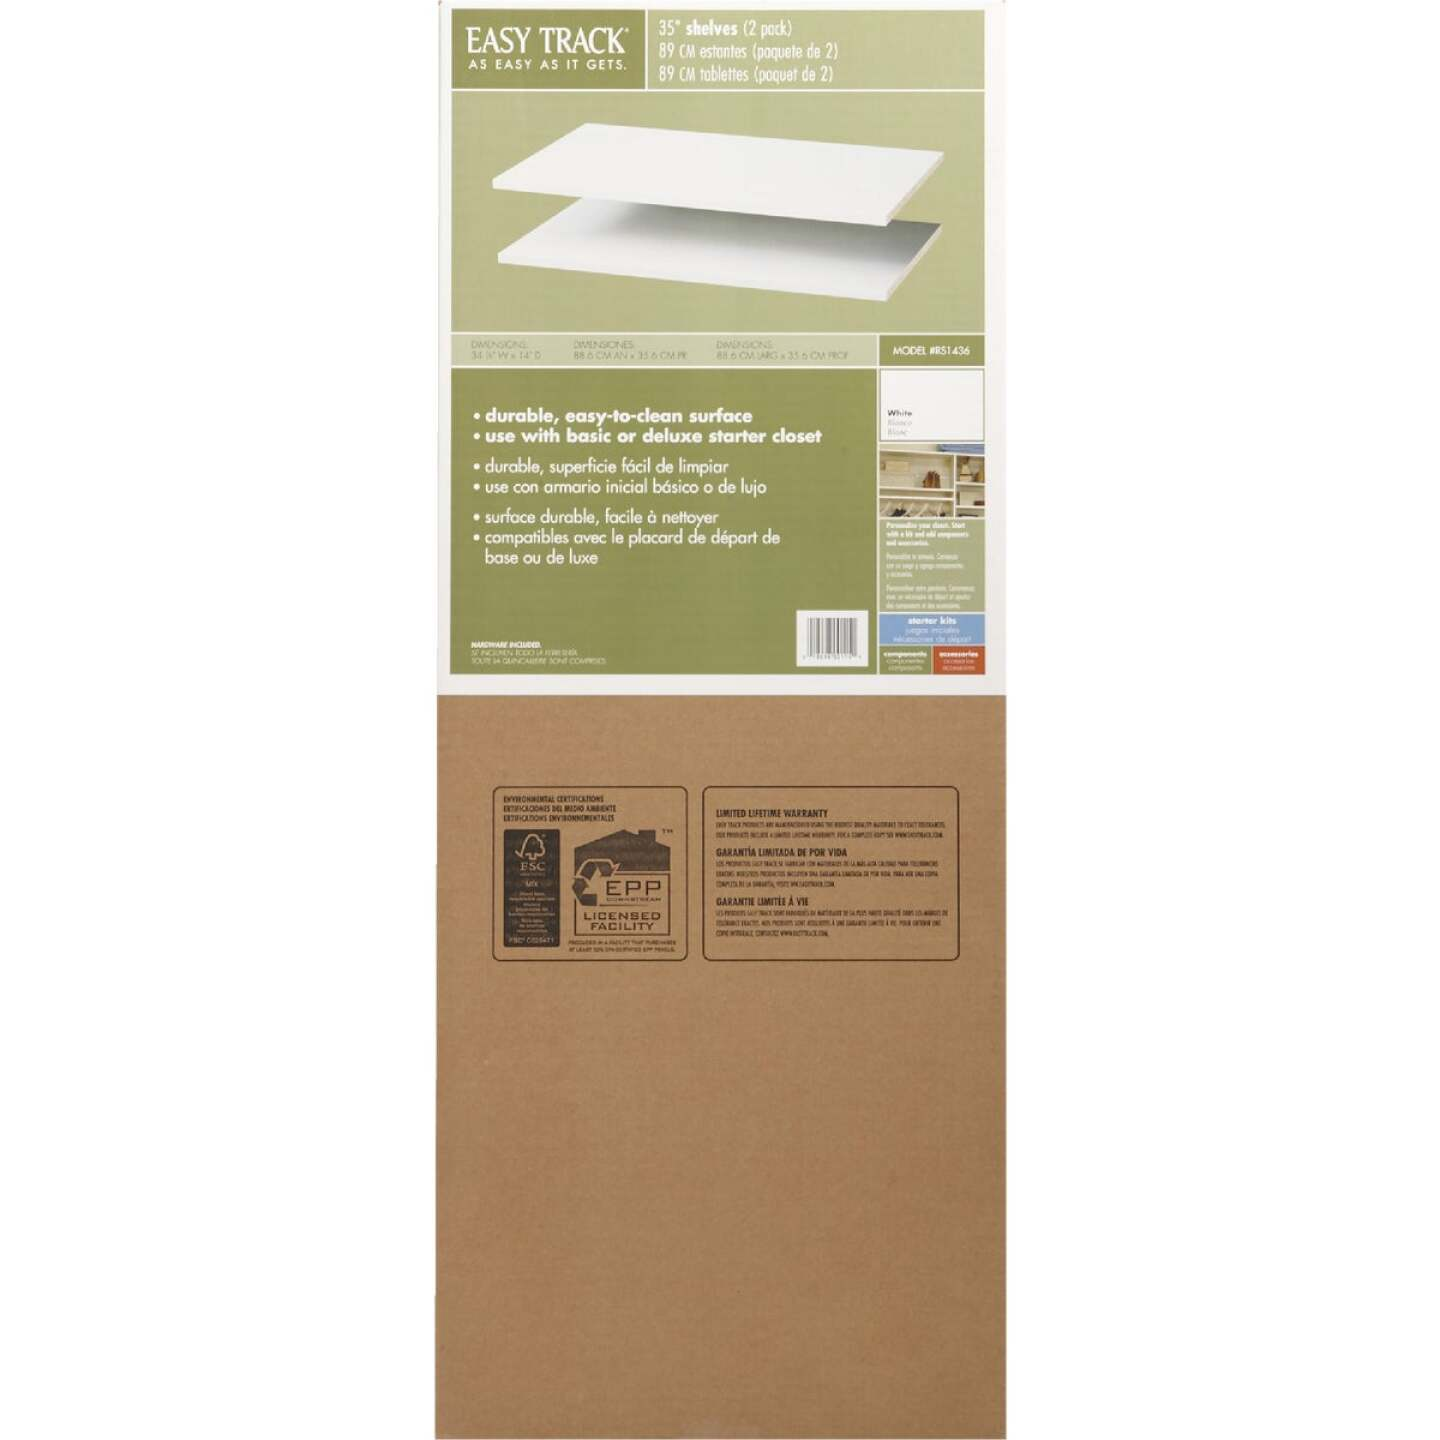 Easy Track 3 Ft. W. x 14 In. D. Laminated Closet Shelf, White (2-Pack) Image 2